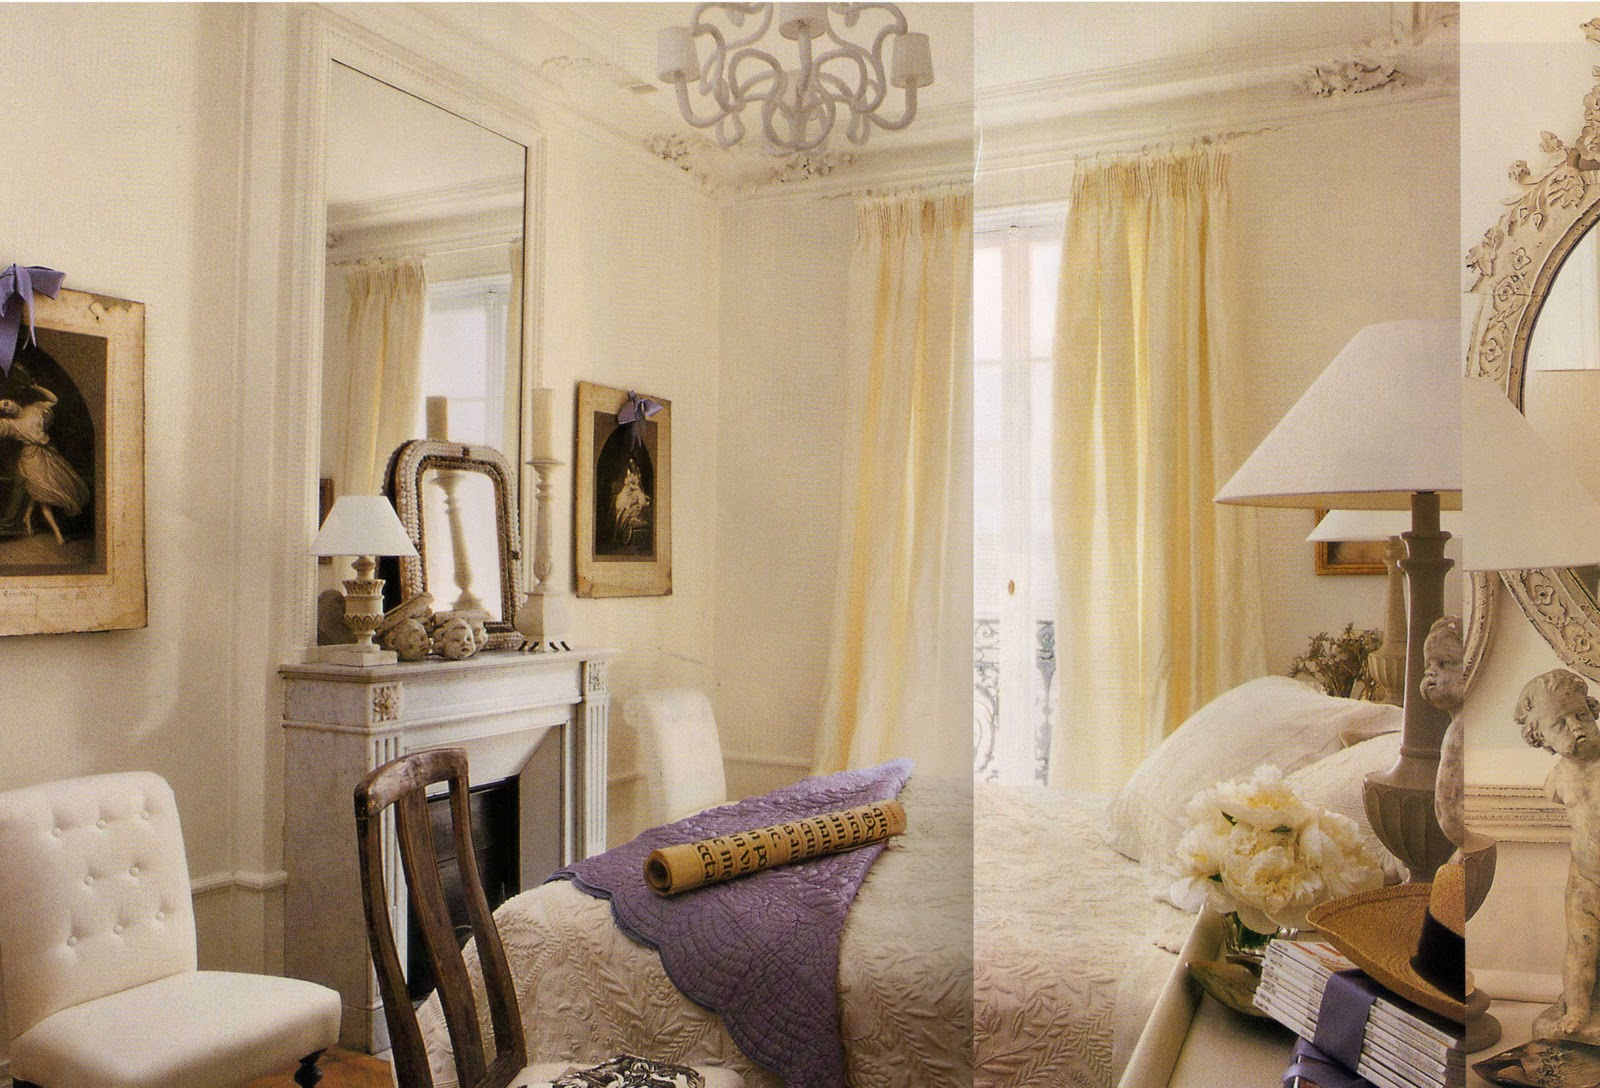 The last photo is of the guest room. The room is accented by touches title=